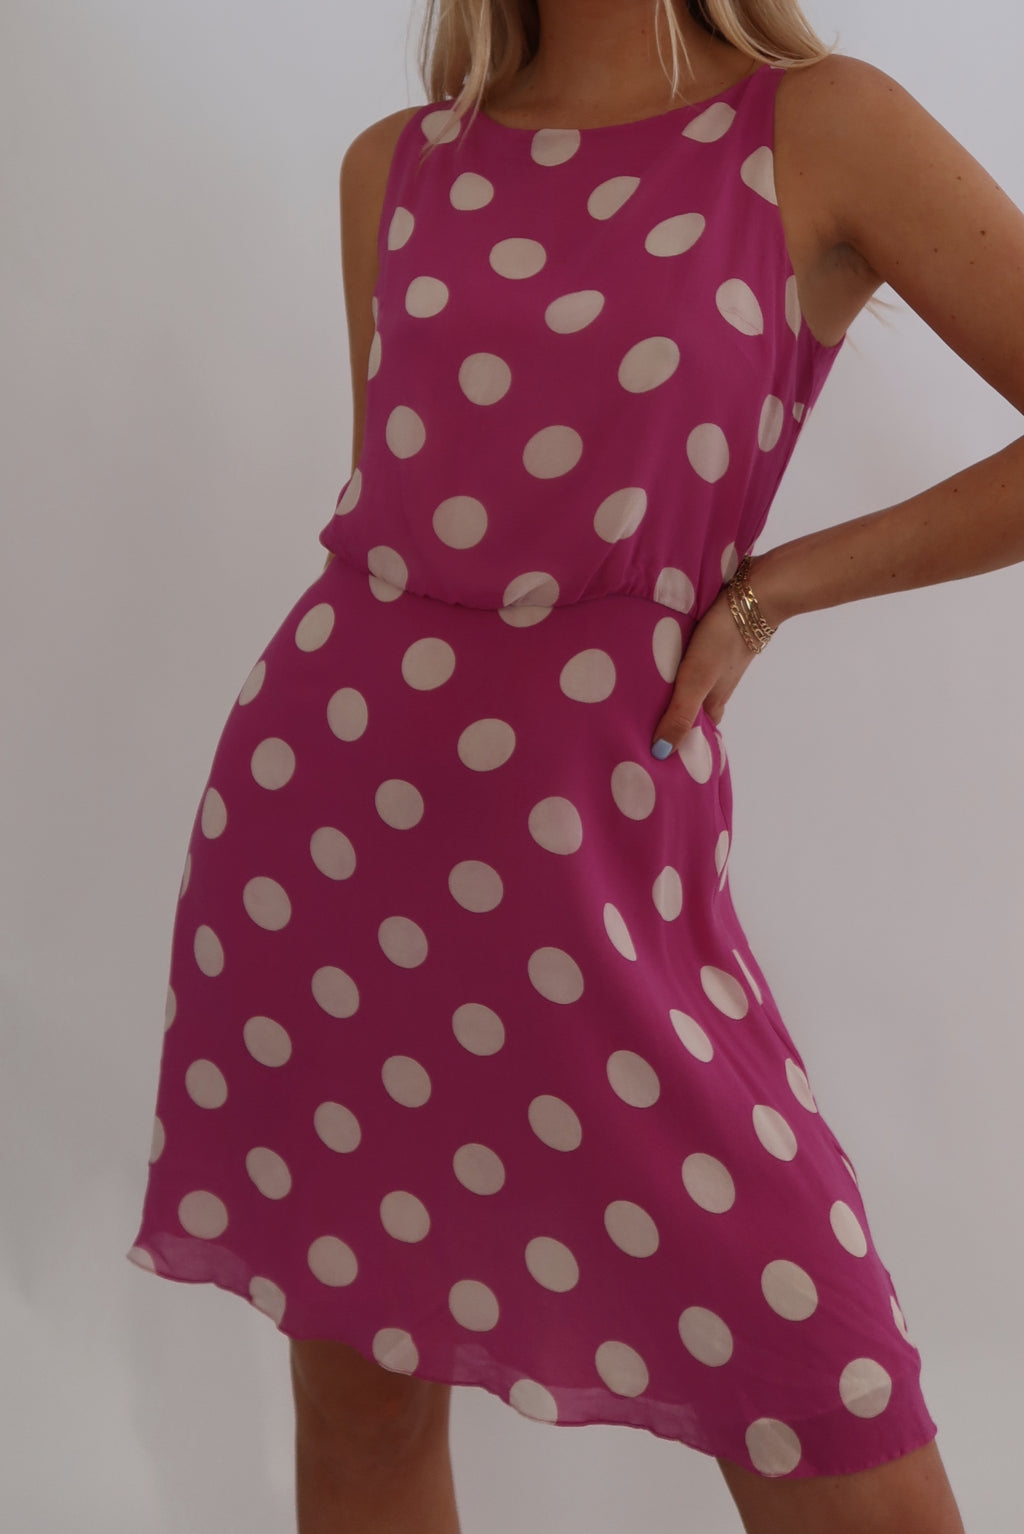 Fun Silk Polk-A-Dot Dress (S)